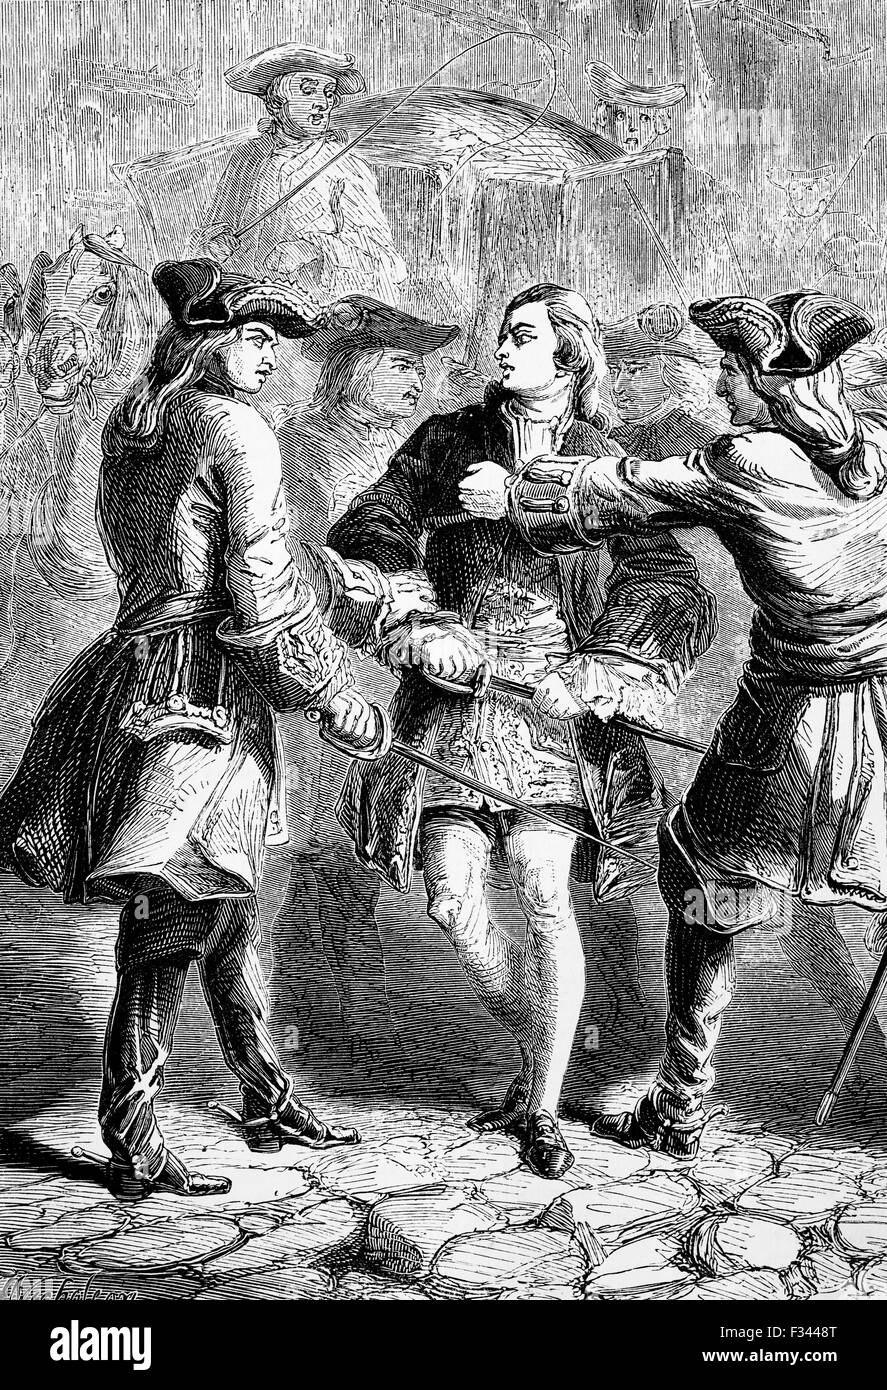 In 1748 Prince Charles, the Young Pretender was arrested and expelled from France under the terms of the Treaty - Stock Image